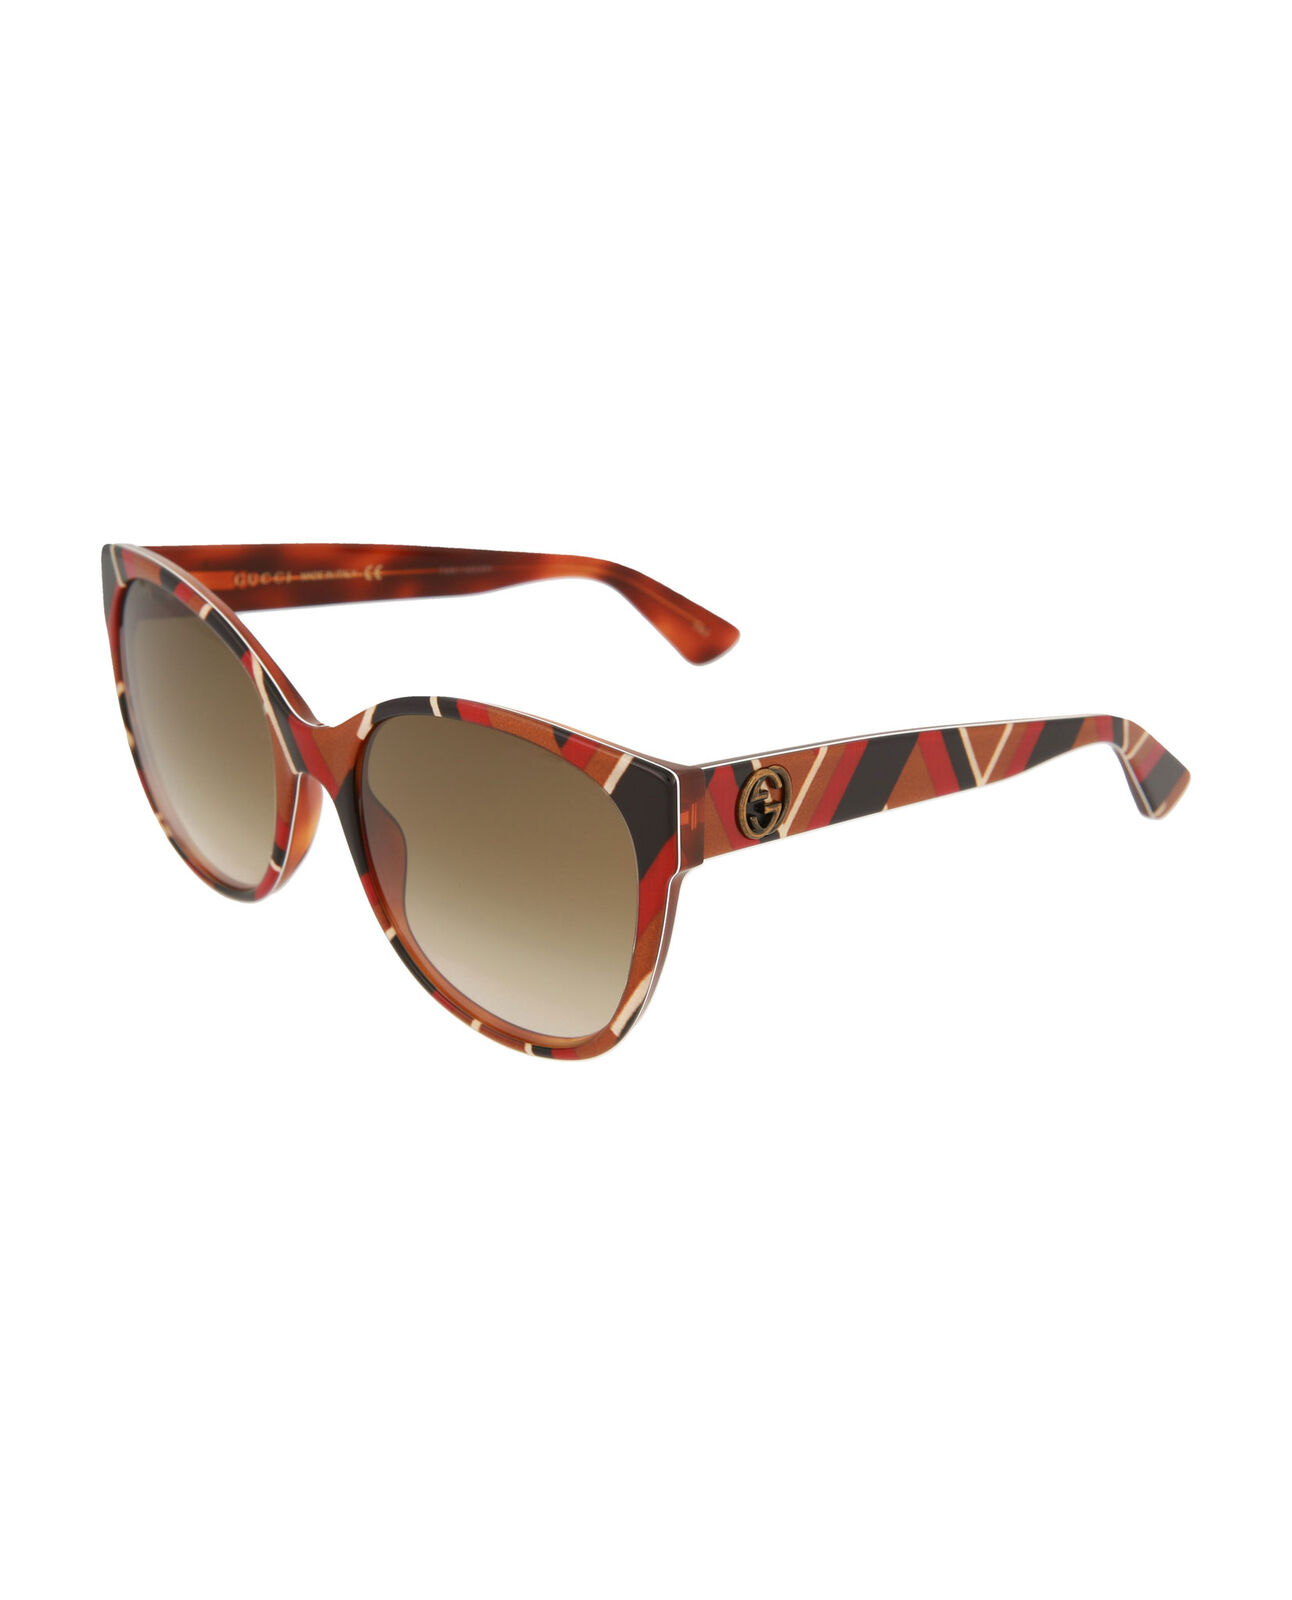 Gucci - Occhiale da Sole Donna, Havana Yellow/Brown Shaded  GG0097S  004  C55